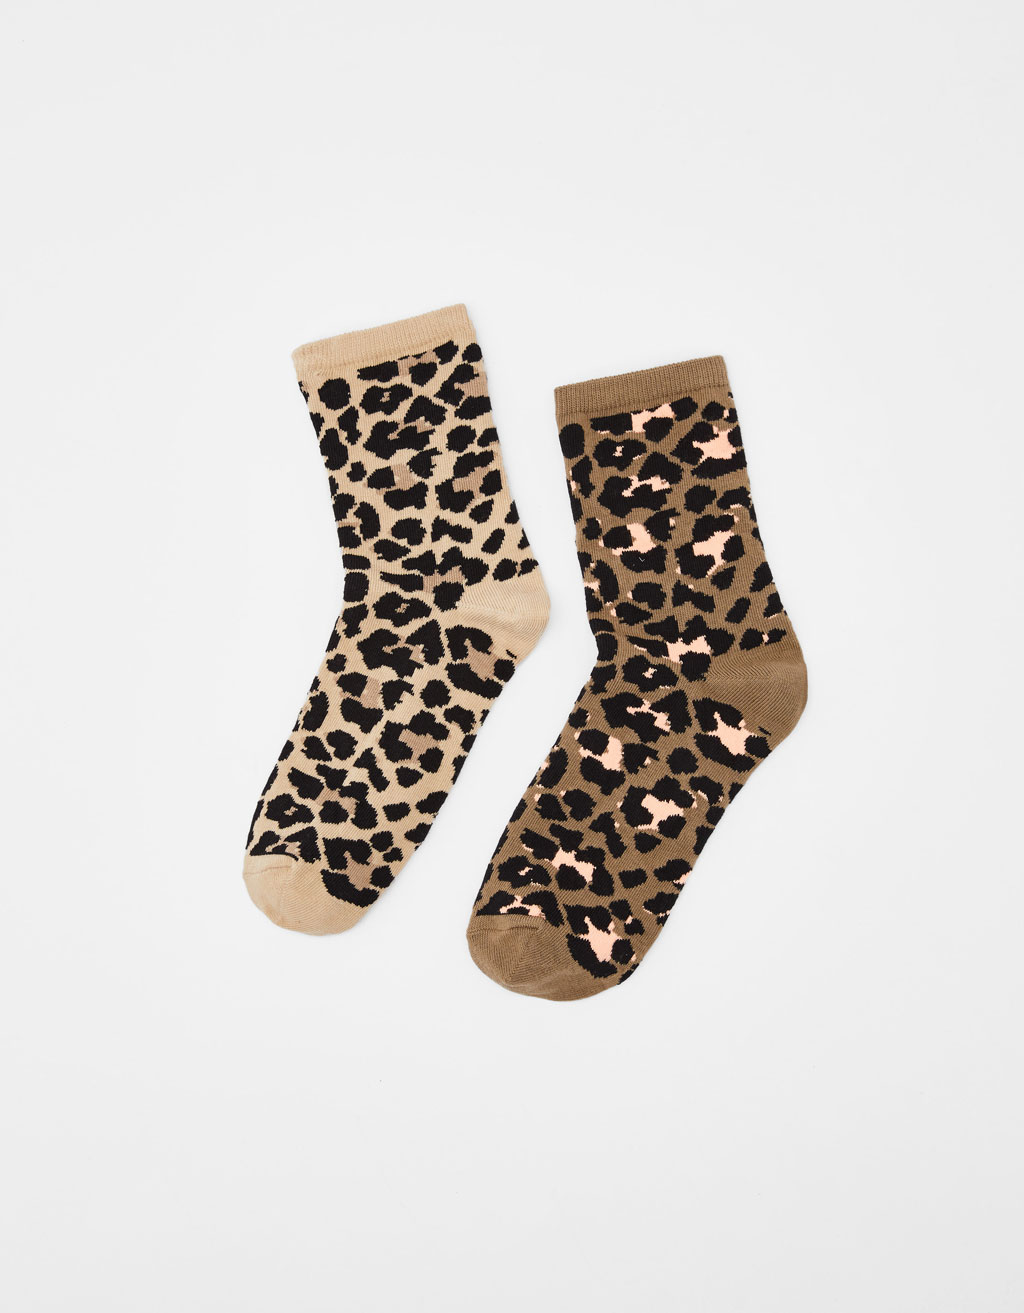 2-pack of leopard print socks